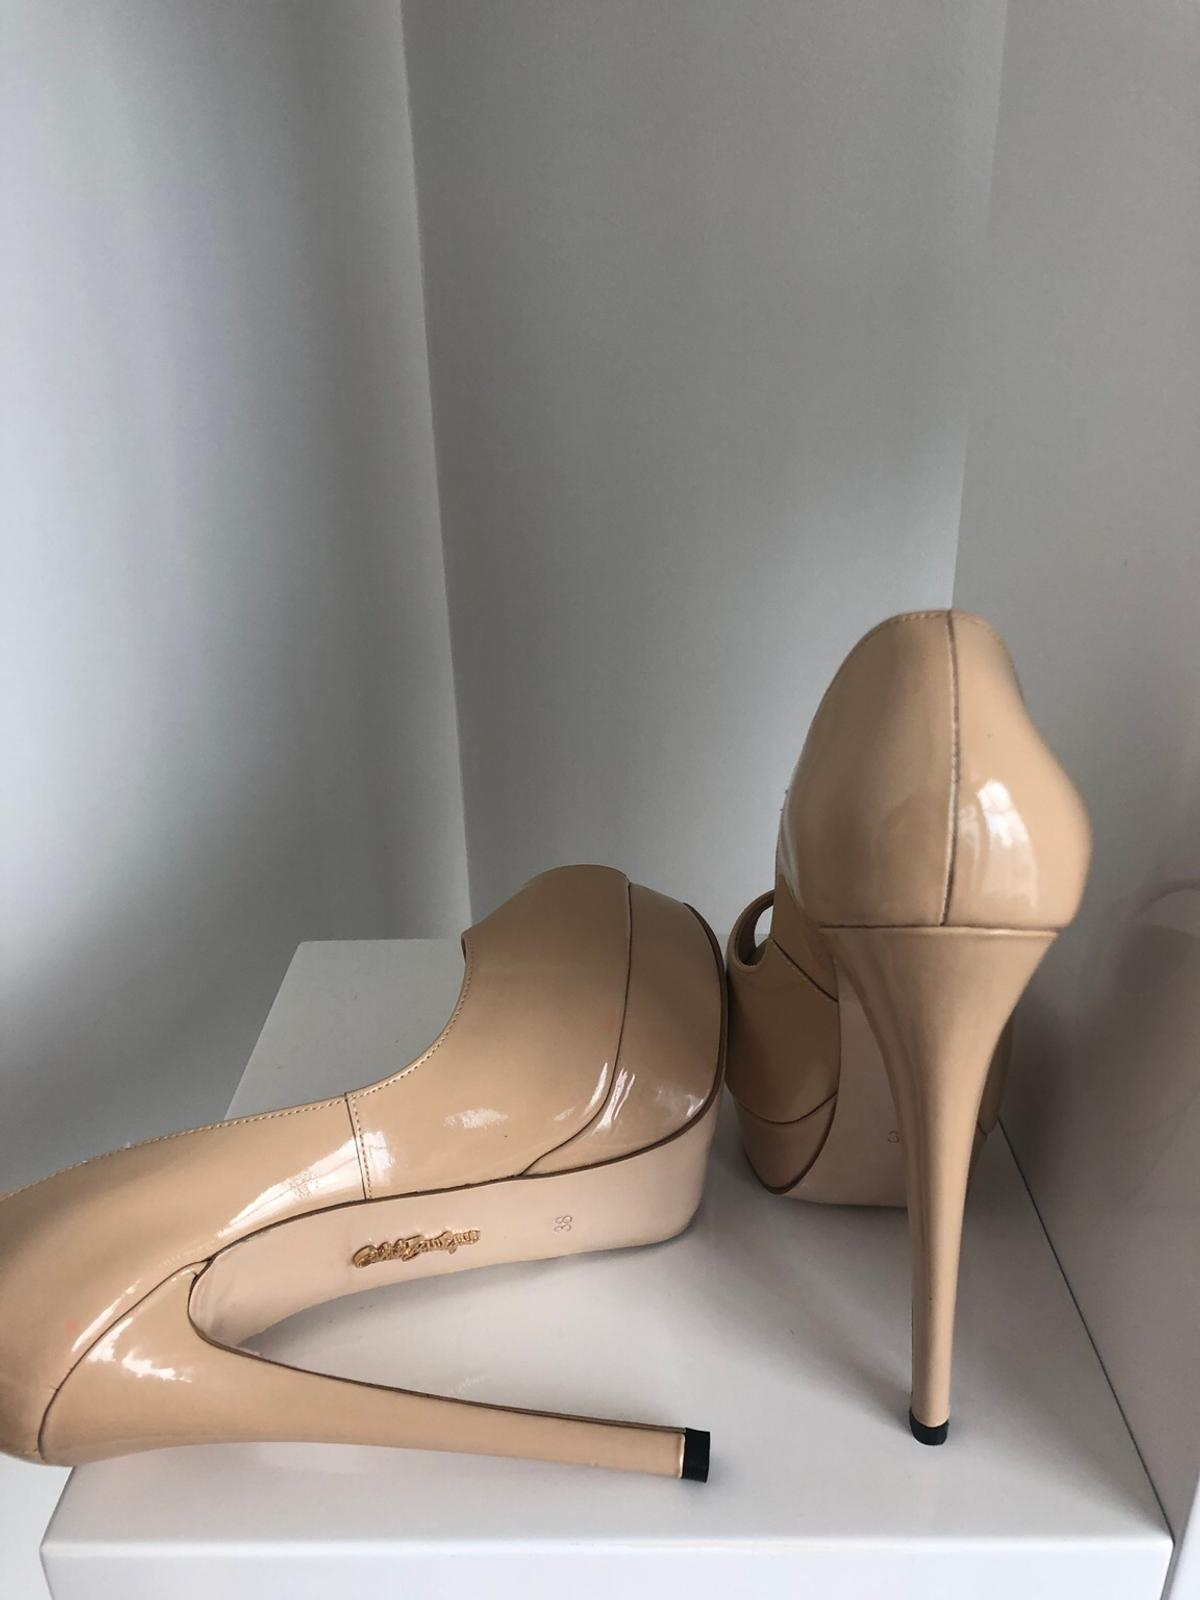 Size 5, never been worn, come with the box. Has a slight pink marking, which I believe comes from being stored in the box for too long. But not noticeable while wearing.